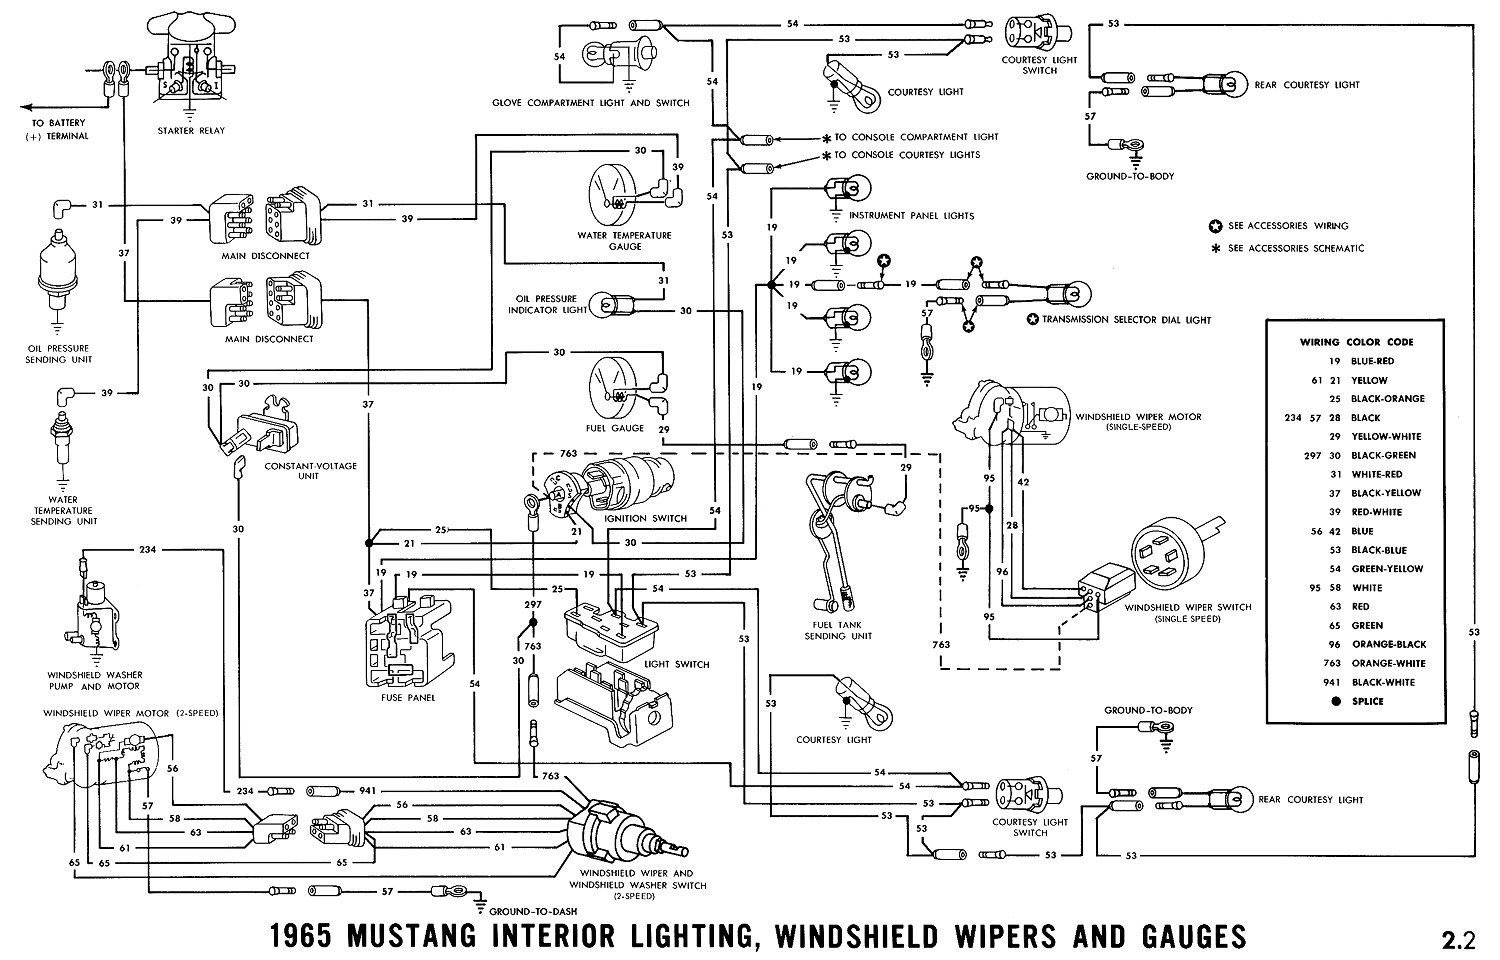 1993 mustang wiring harness diagram 1965 mustang wiring harness diagram 1965 mustang wiring diagrams - average joe restoration